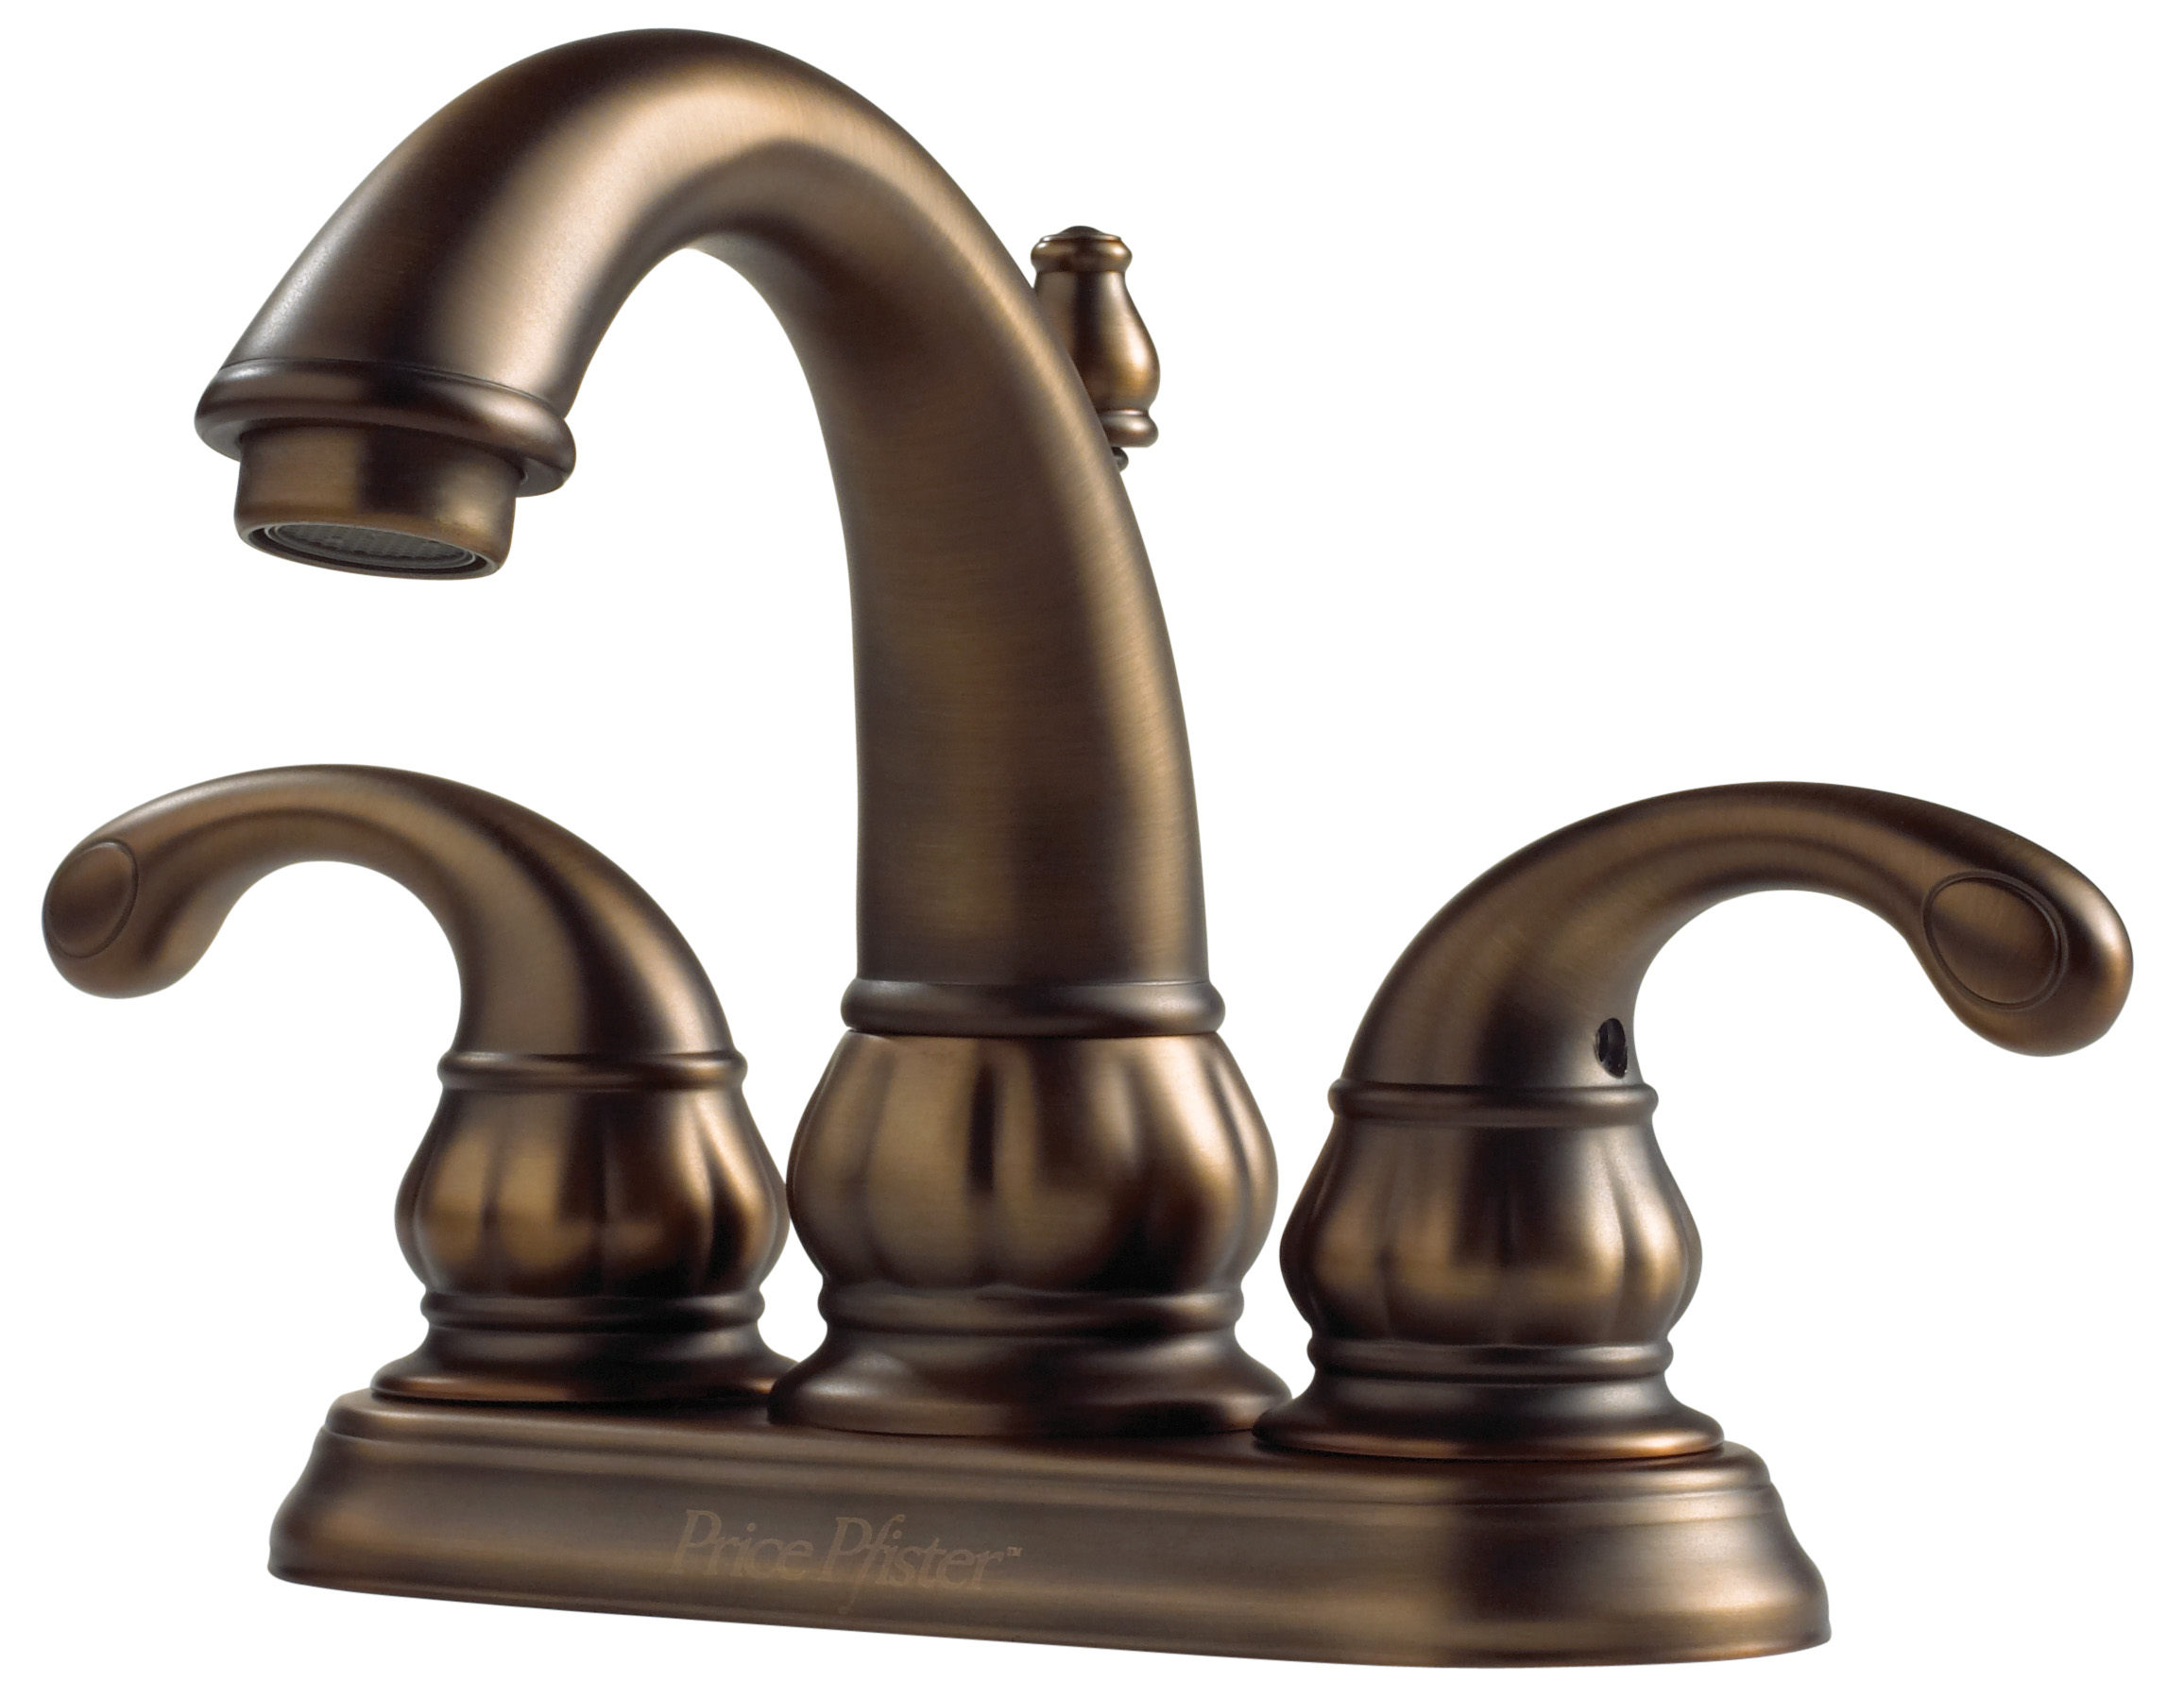 7 Faucet Finishes For Fabulous Bathrooms: Price Pfister Introduces Never-Before-Seen Velvet Aged